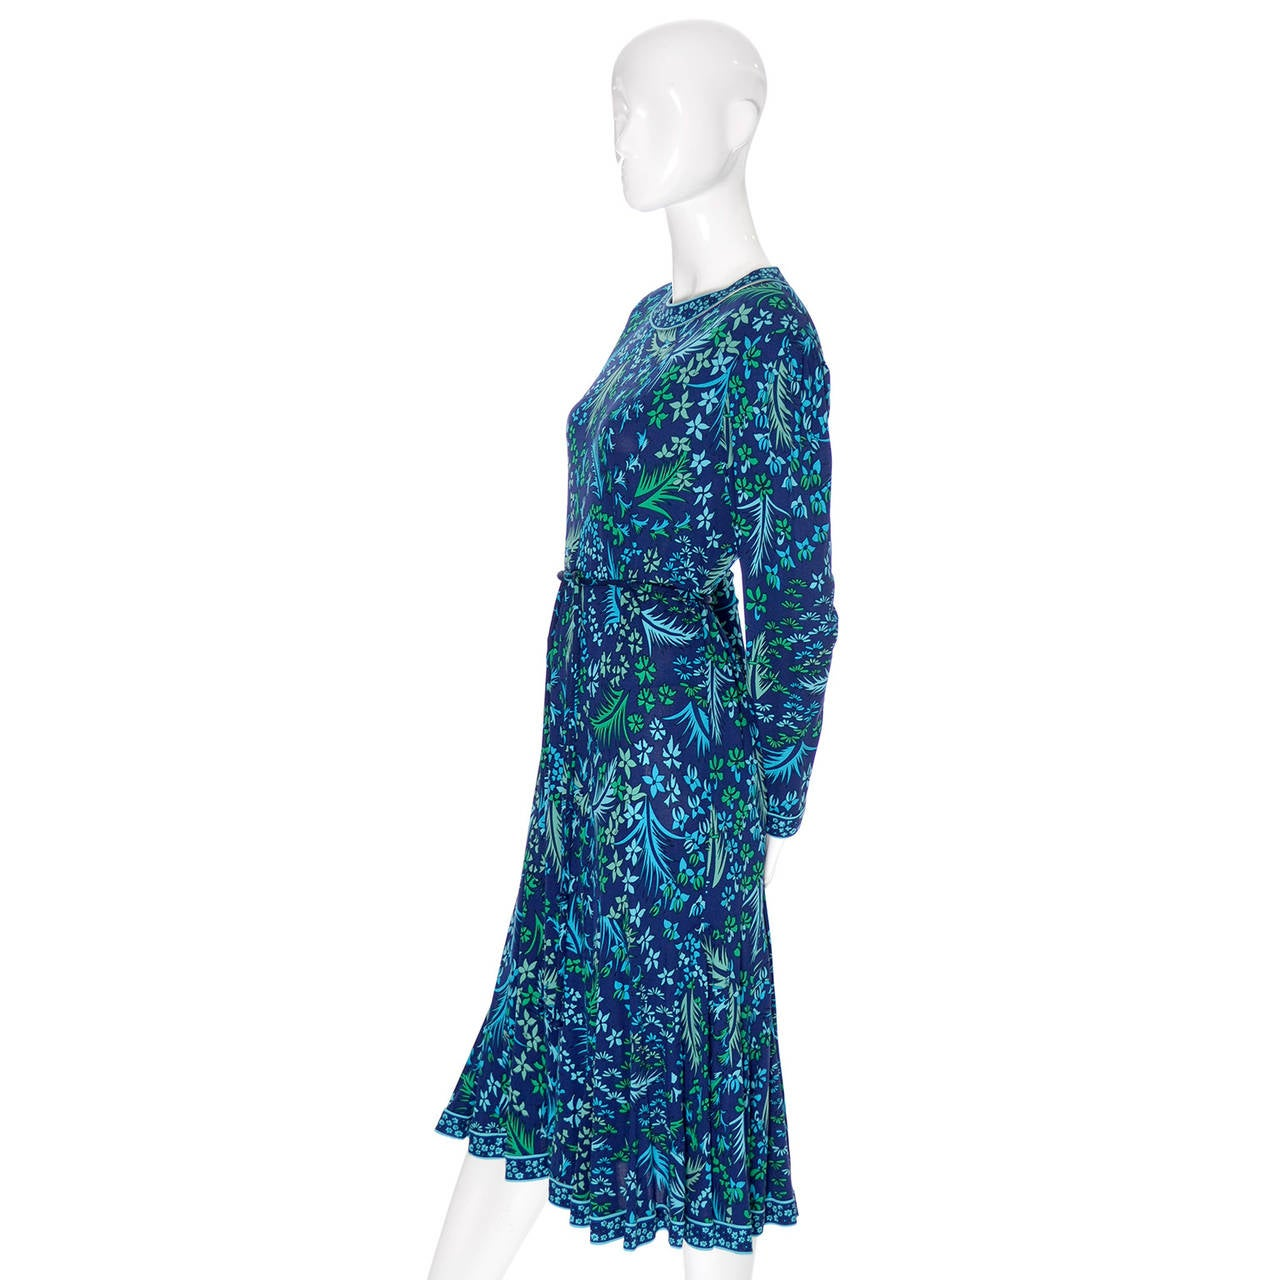 Bessi Silk Jersey Floral 1970s Vintage Dress Belt Firenze Italia Blue In Excellent Condition For Sale In Portland, OR